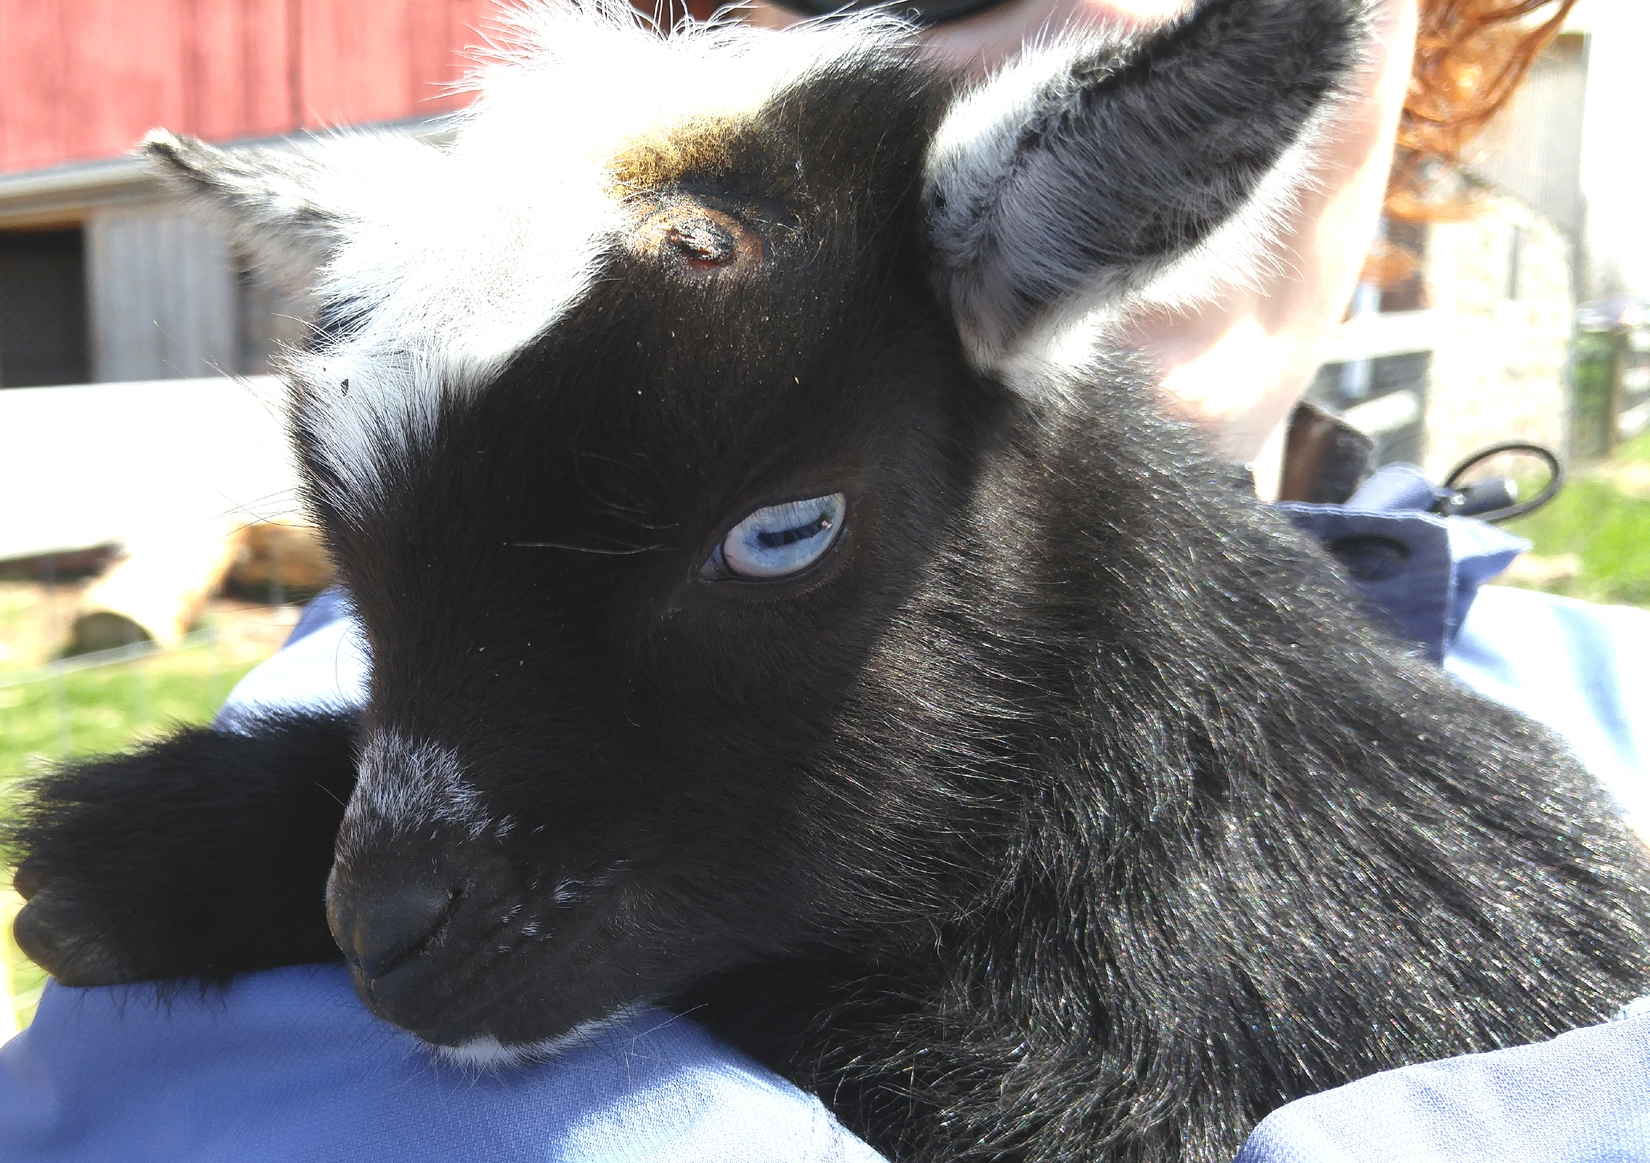 Dallas, the week old Nigerian Dwarf goat who was passed around for cuddles.